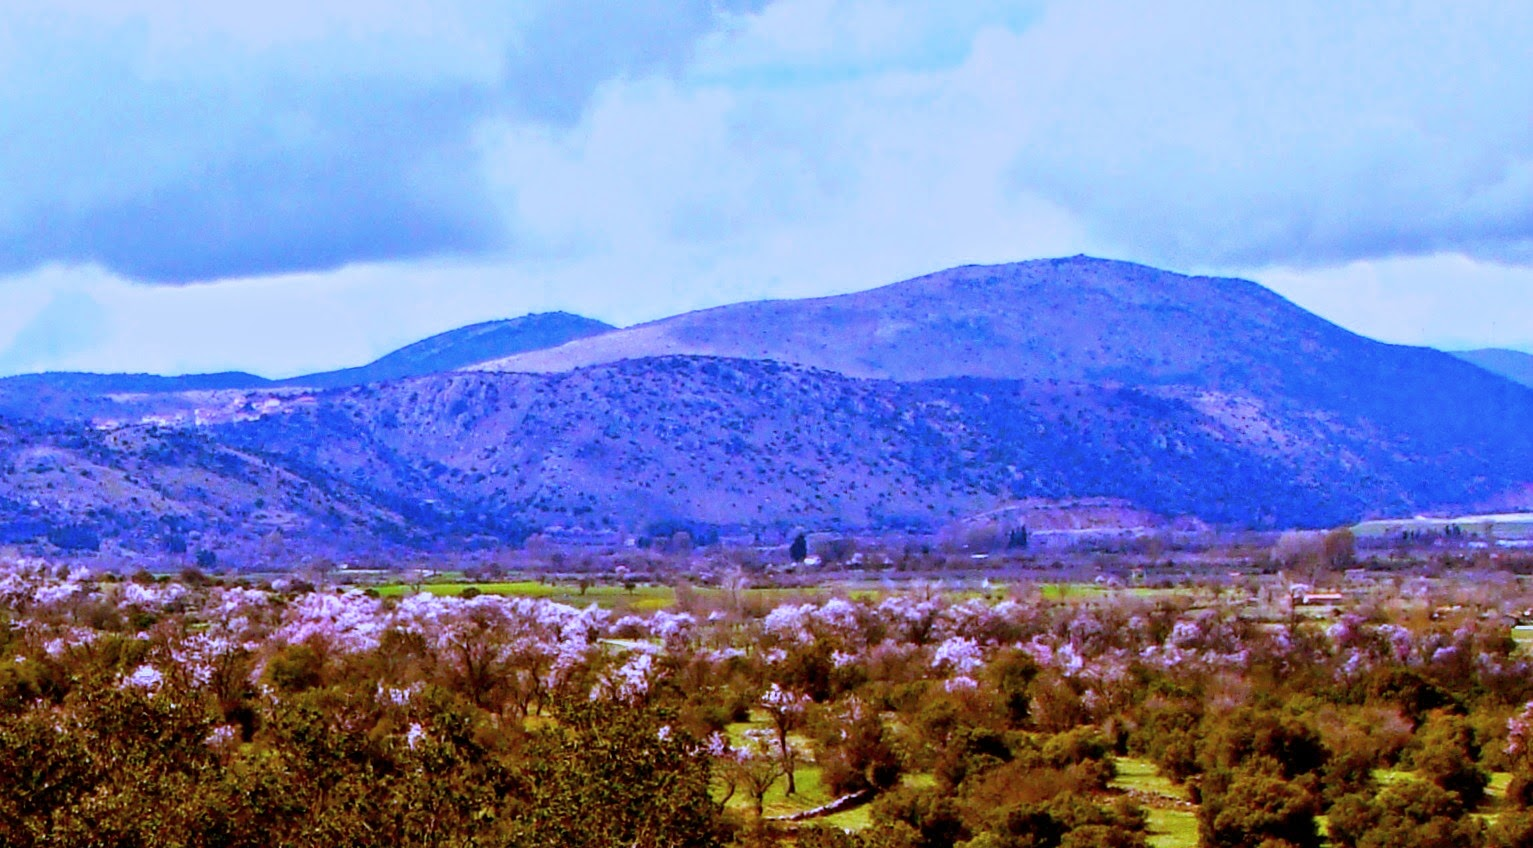 On the road to Sparta Almond trees in blossom.